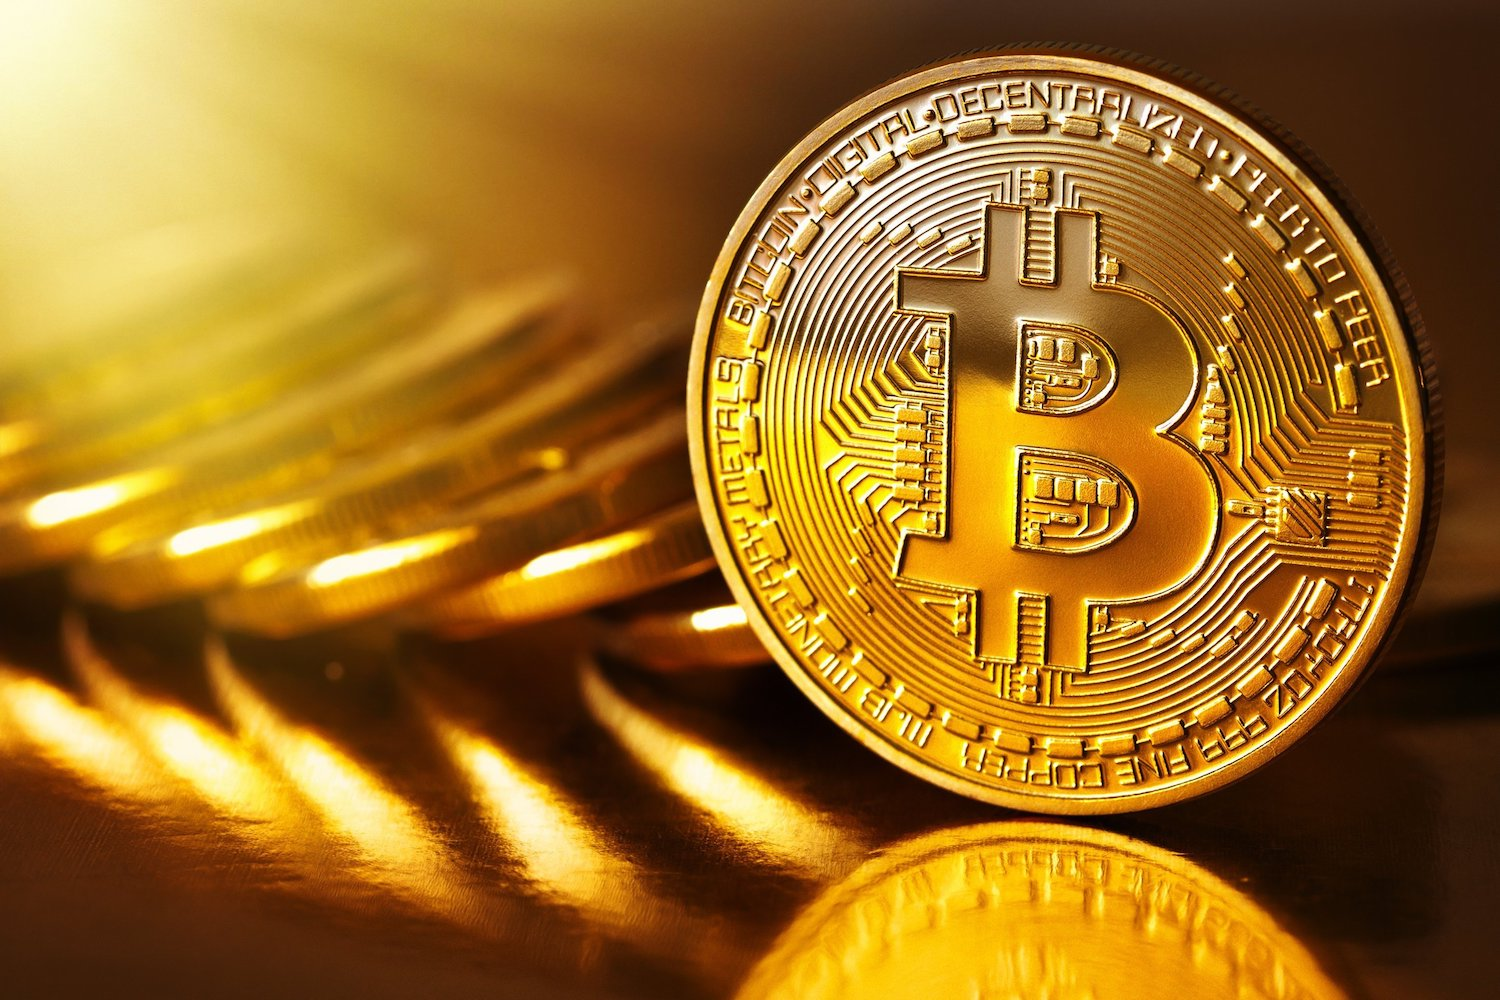 bitcoin v gold which is the better investment